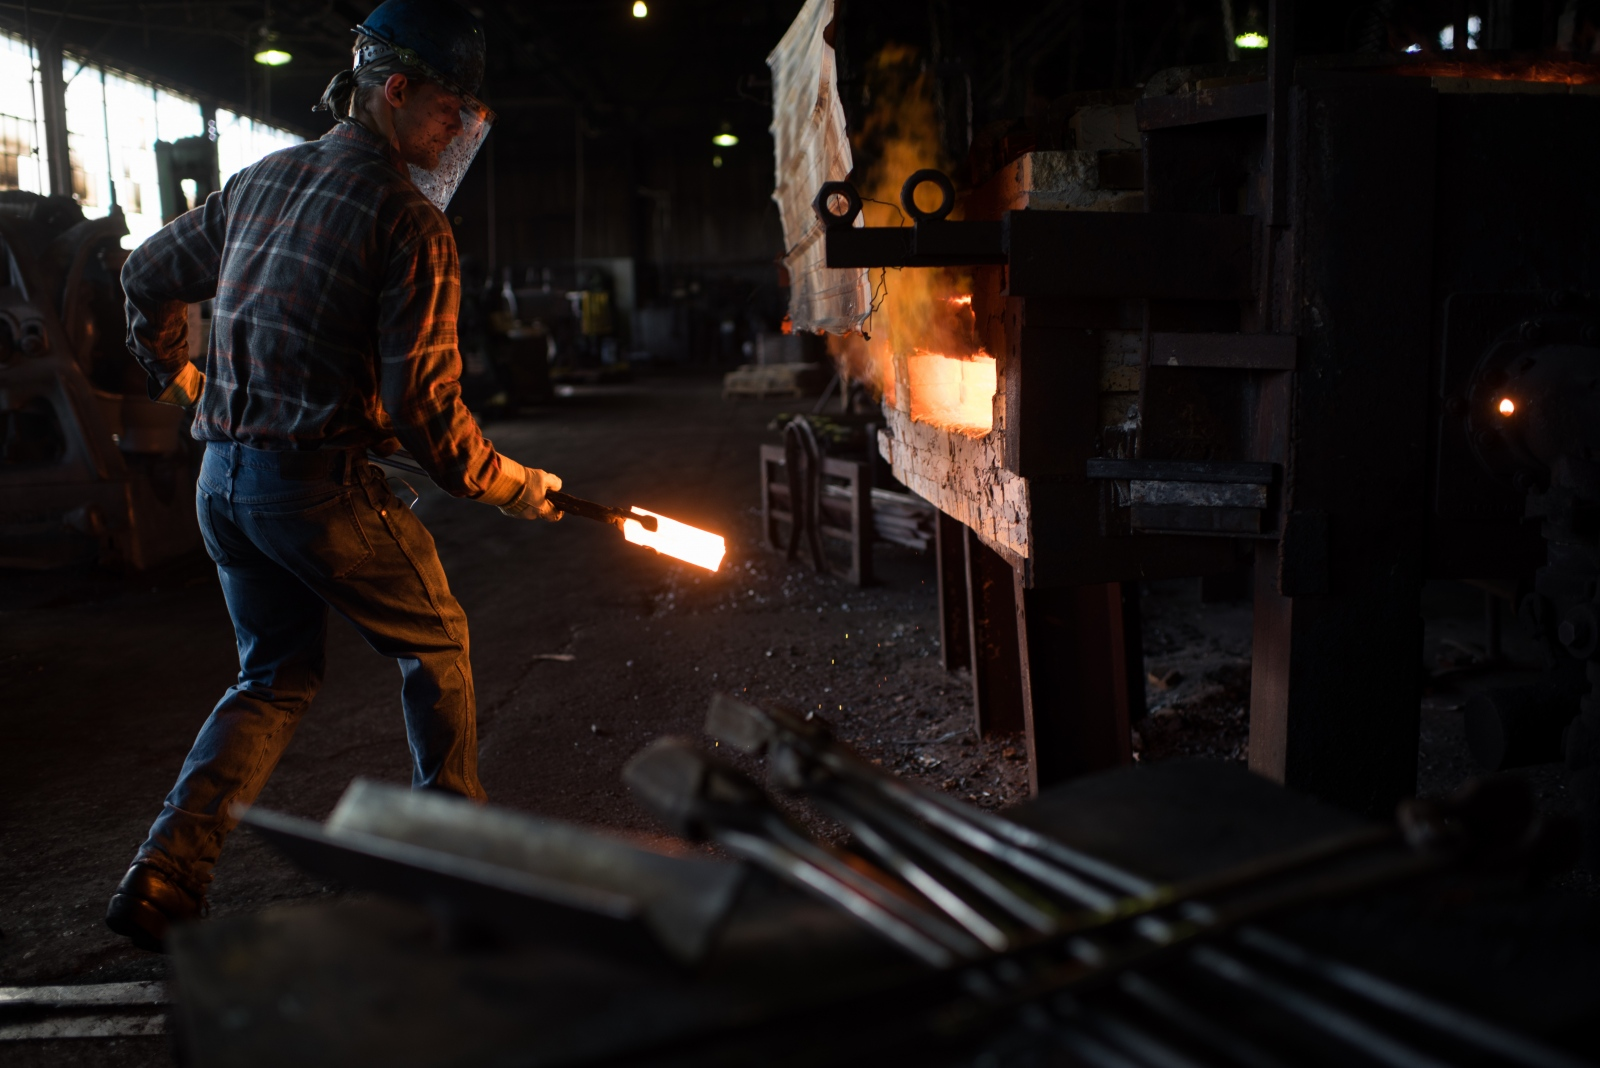 At the Warwood Tool Company, William Davenport's movements appear as a hypnotic dance in the face of the billowing heat of the slot furnace. He pulls a steel billet from a stack, swings toward the waiting furnace and deposits it. Seconds later, after gauging the color—now white like some celestial object—he clenches and delivers it to the forging stage. Repeat. The company—which was founded in 1854 and supplies tools to the railroad, mining and construction industries—is one of Wheeling's few remaining functioning remnants of its significant 19th-century industrial age. Competition from cheaper foreign-made products and the contraction of the steel industry has placed pressure on the company.